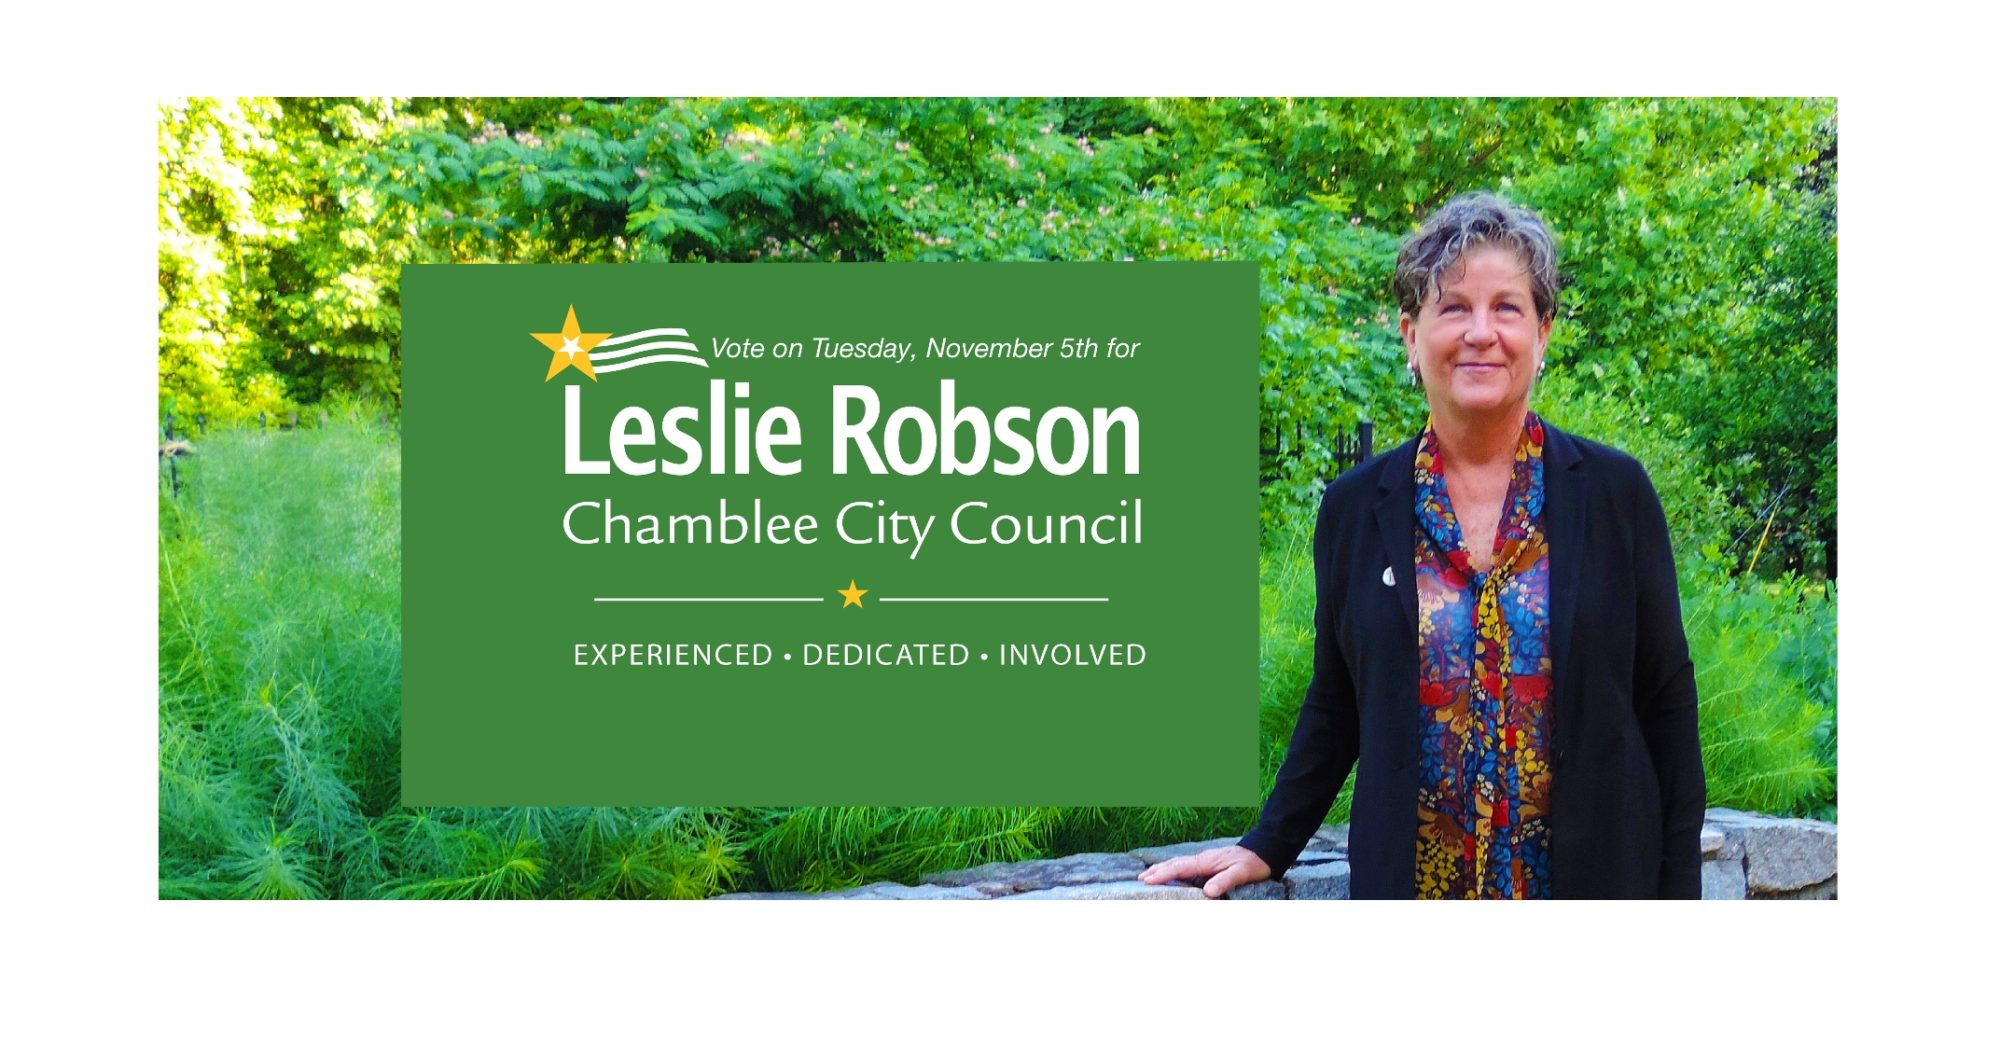 Leslie Robson for Chamblee